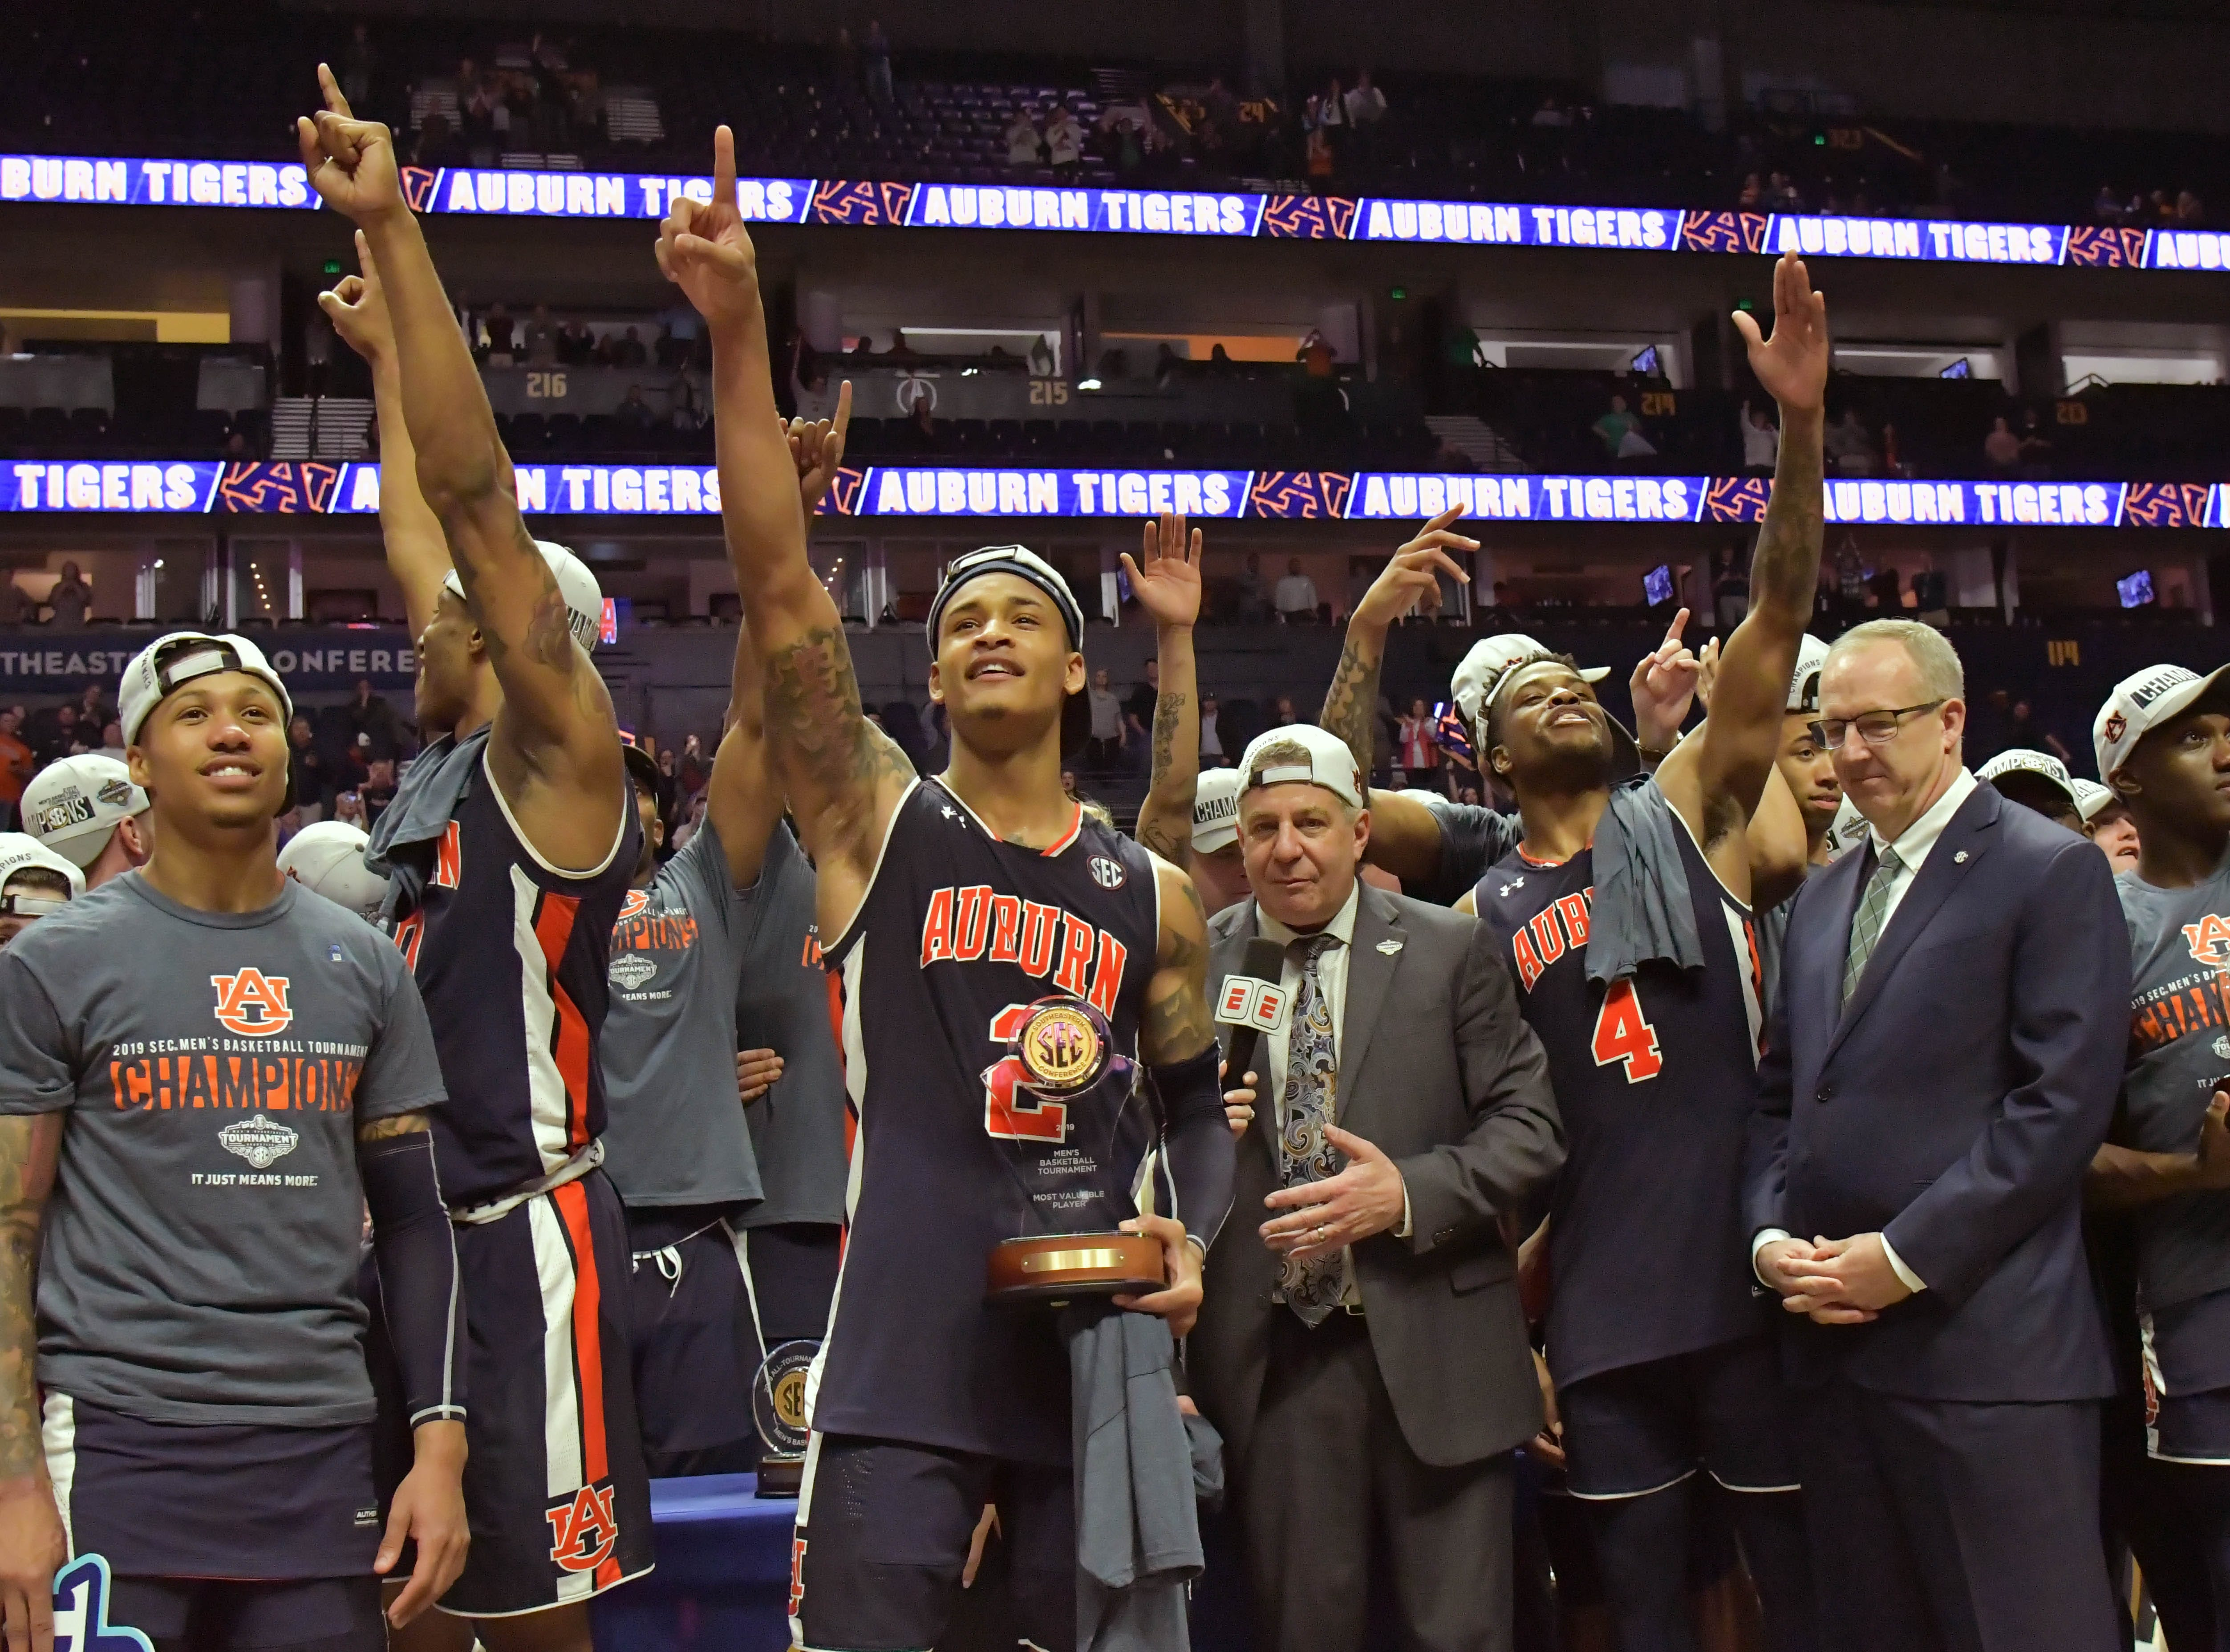 Mar 17, 2019; Nashville, TN, USA;  Auburn Tigers celebrate defeating the Tennessee Volunteers following the championship game in the SEC conference tournament at Bridgestone Arena. Auburn won 84-64. Mandatory Credit: Jim Brown-USA TODAY Sports